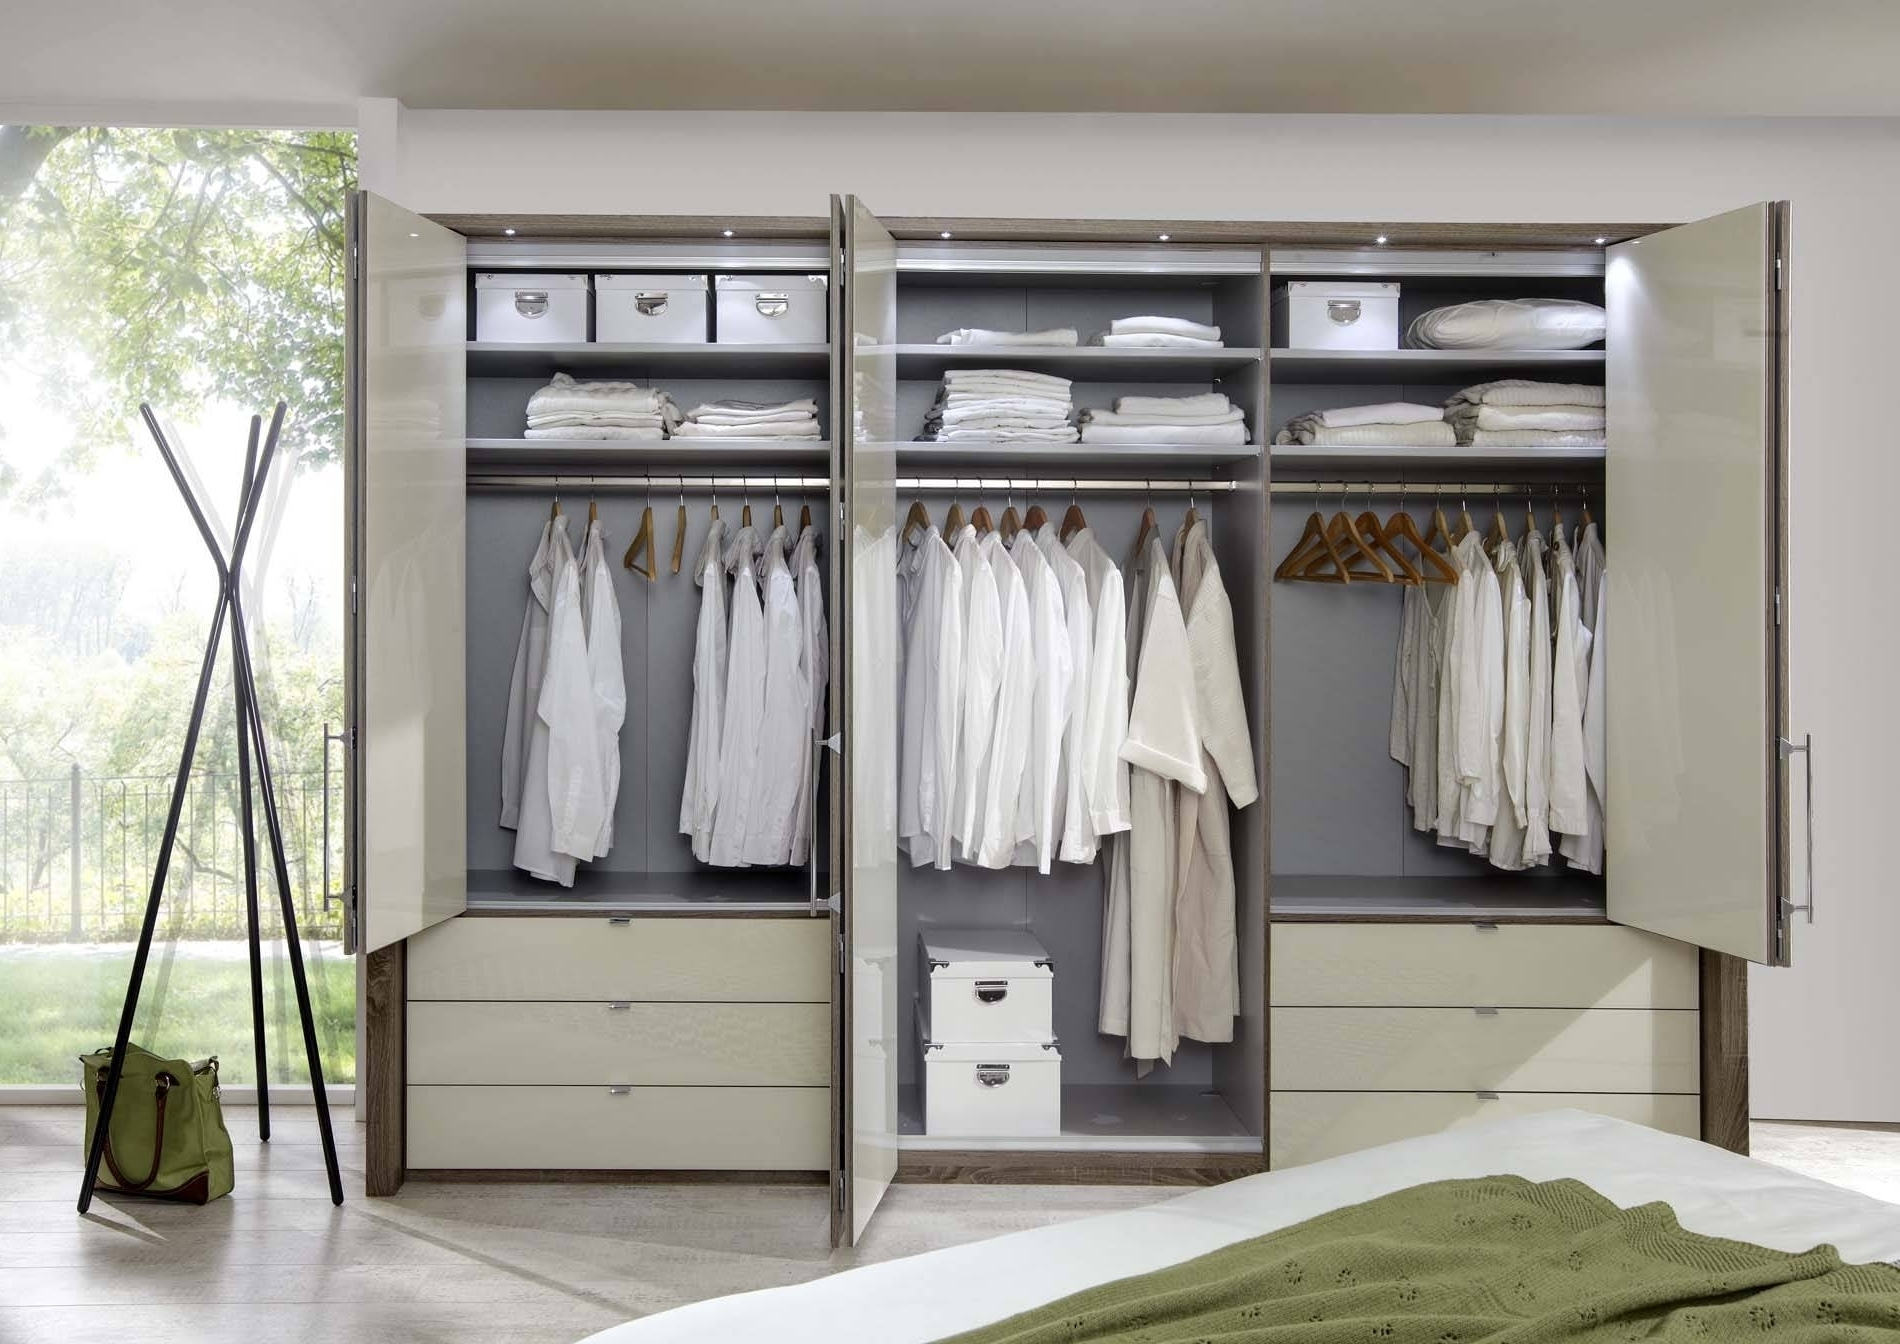 Home Decor & Furnitures For Preferred 6 Door Wardrobes Bedroom Furniture (View 9 of 15)